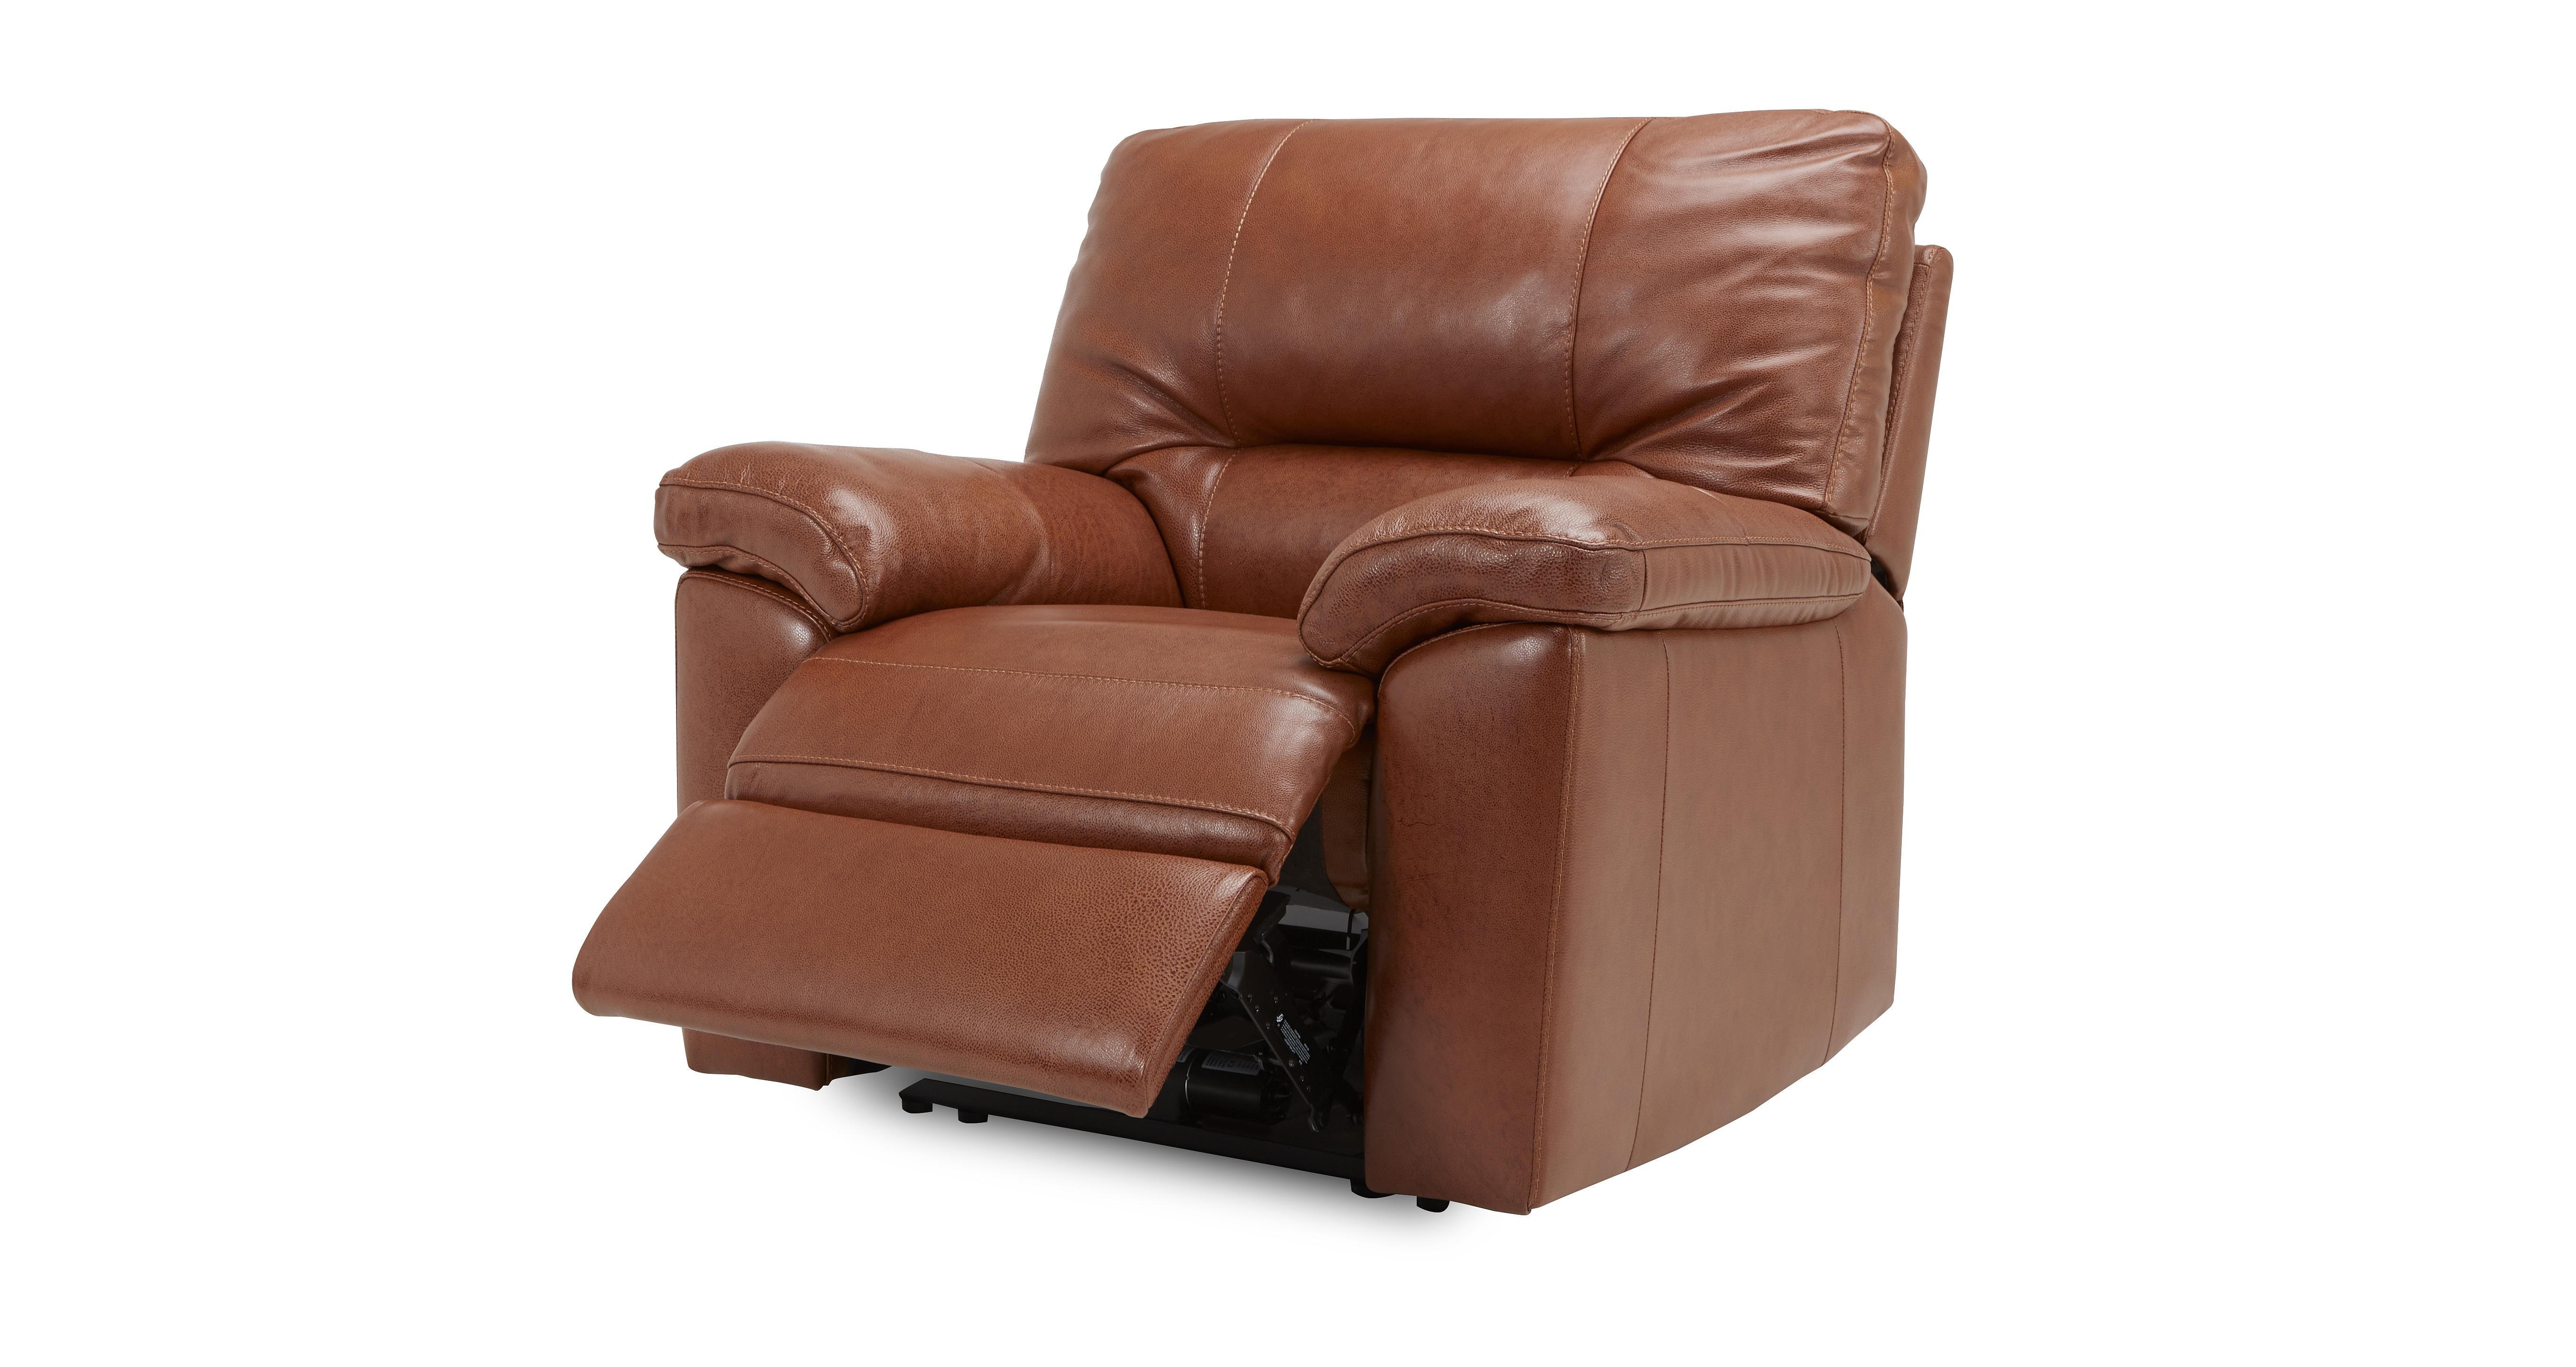 power recliner chairs uk chair mat for hardwood floor staples dalmore brazil with leather look